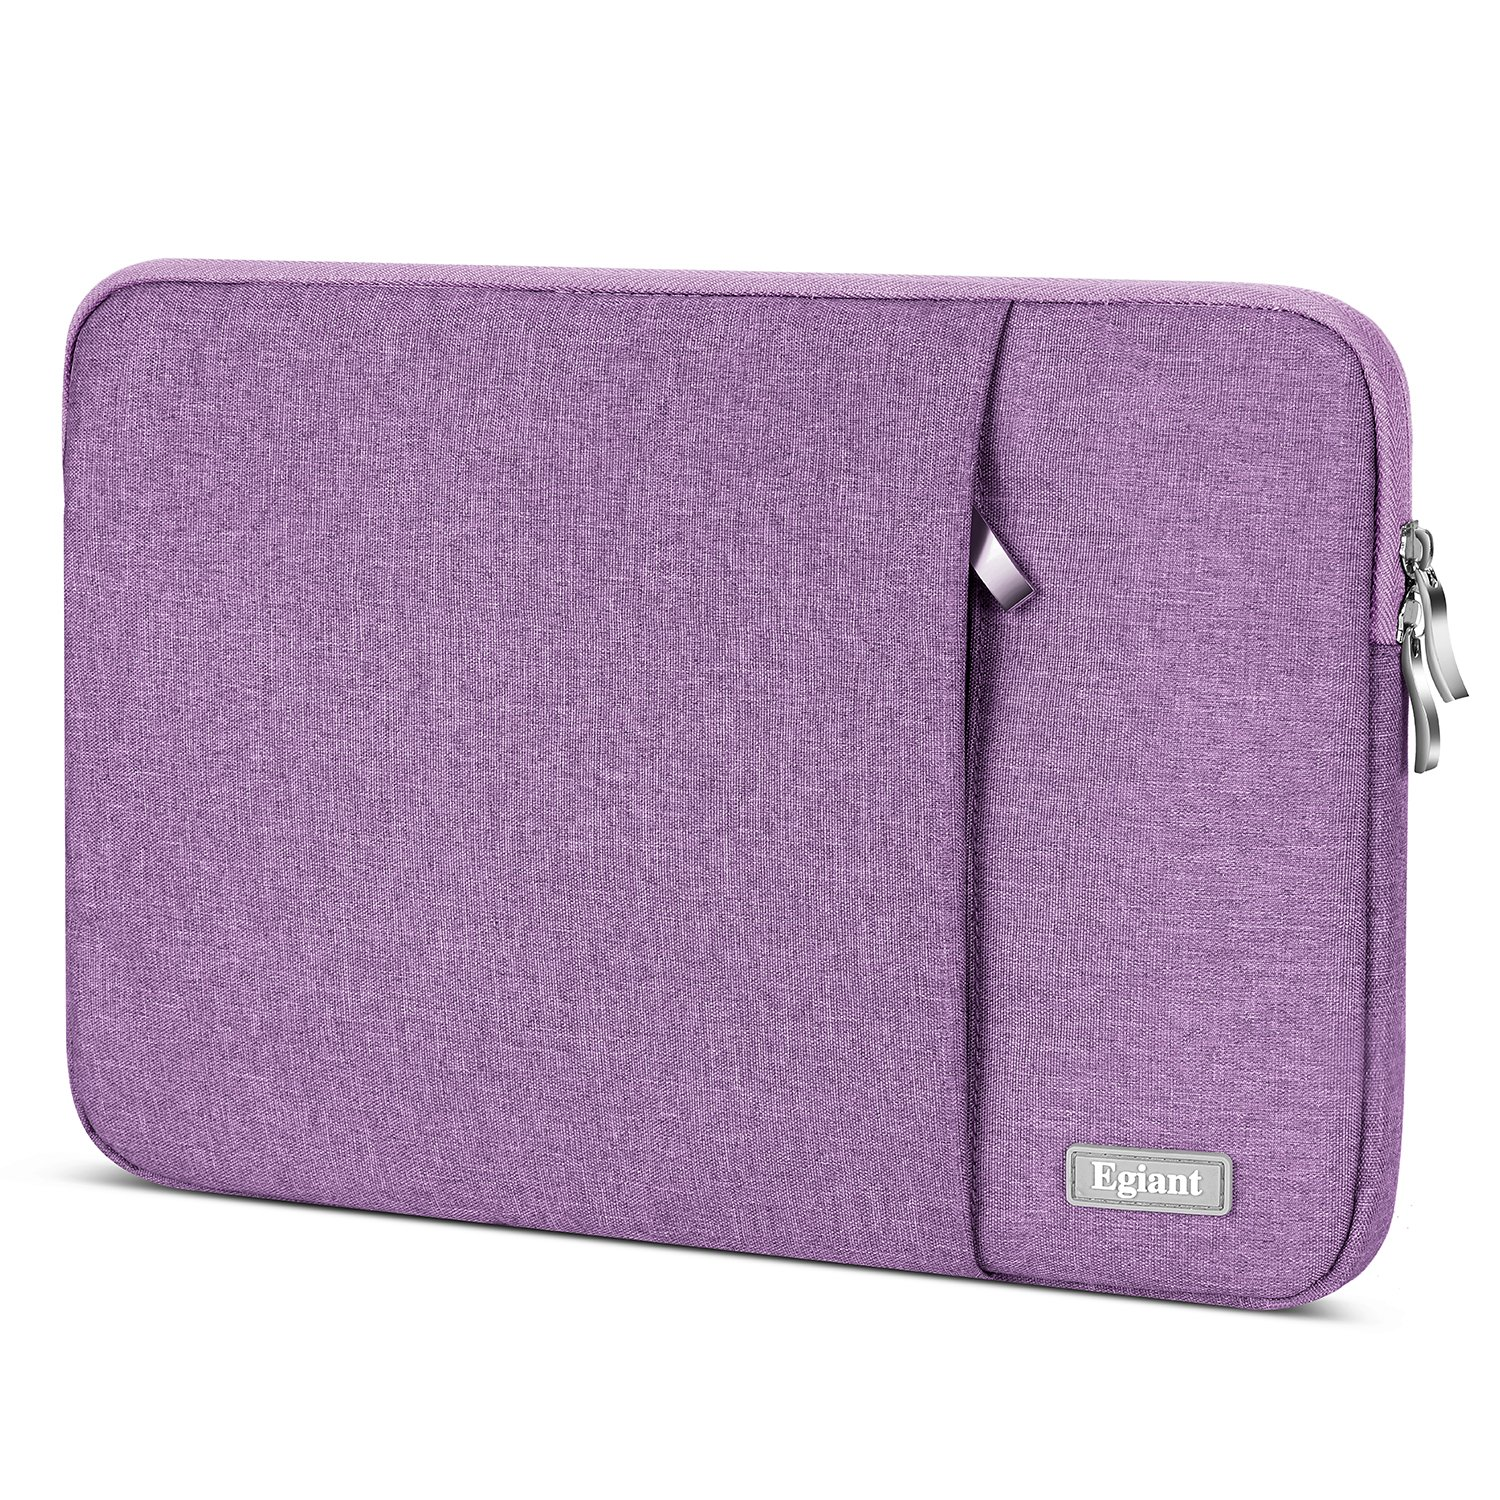 Laptop Sleeve 15.6 Inch,Egiant Water Repellent Protective Fabric Notebook Bag Case Compatible F555LA MB168B,Aspire E15, Chromebook 15,Inspiron 15.6, 15.6 Inch Pavilion,Computer Carrying Case,Purple by egiant